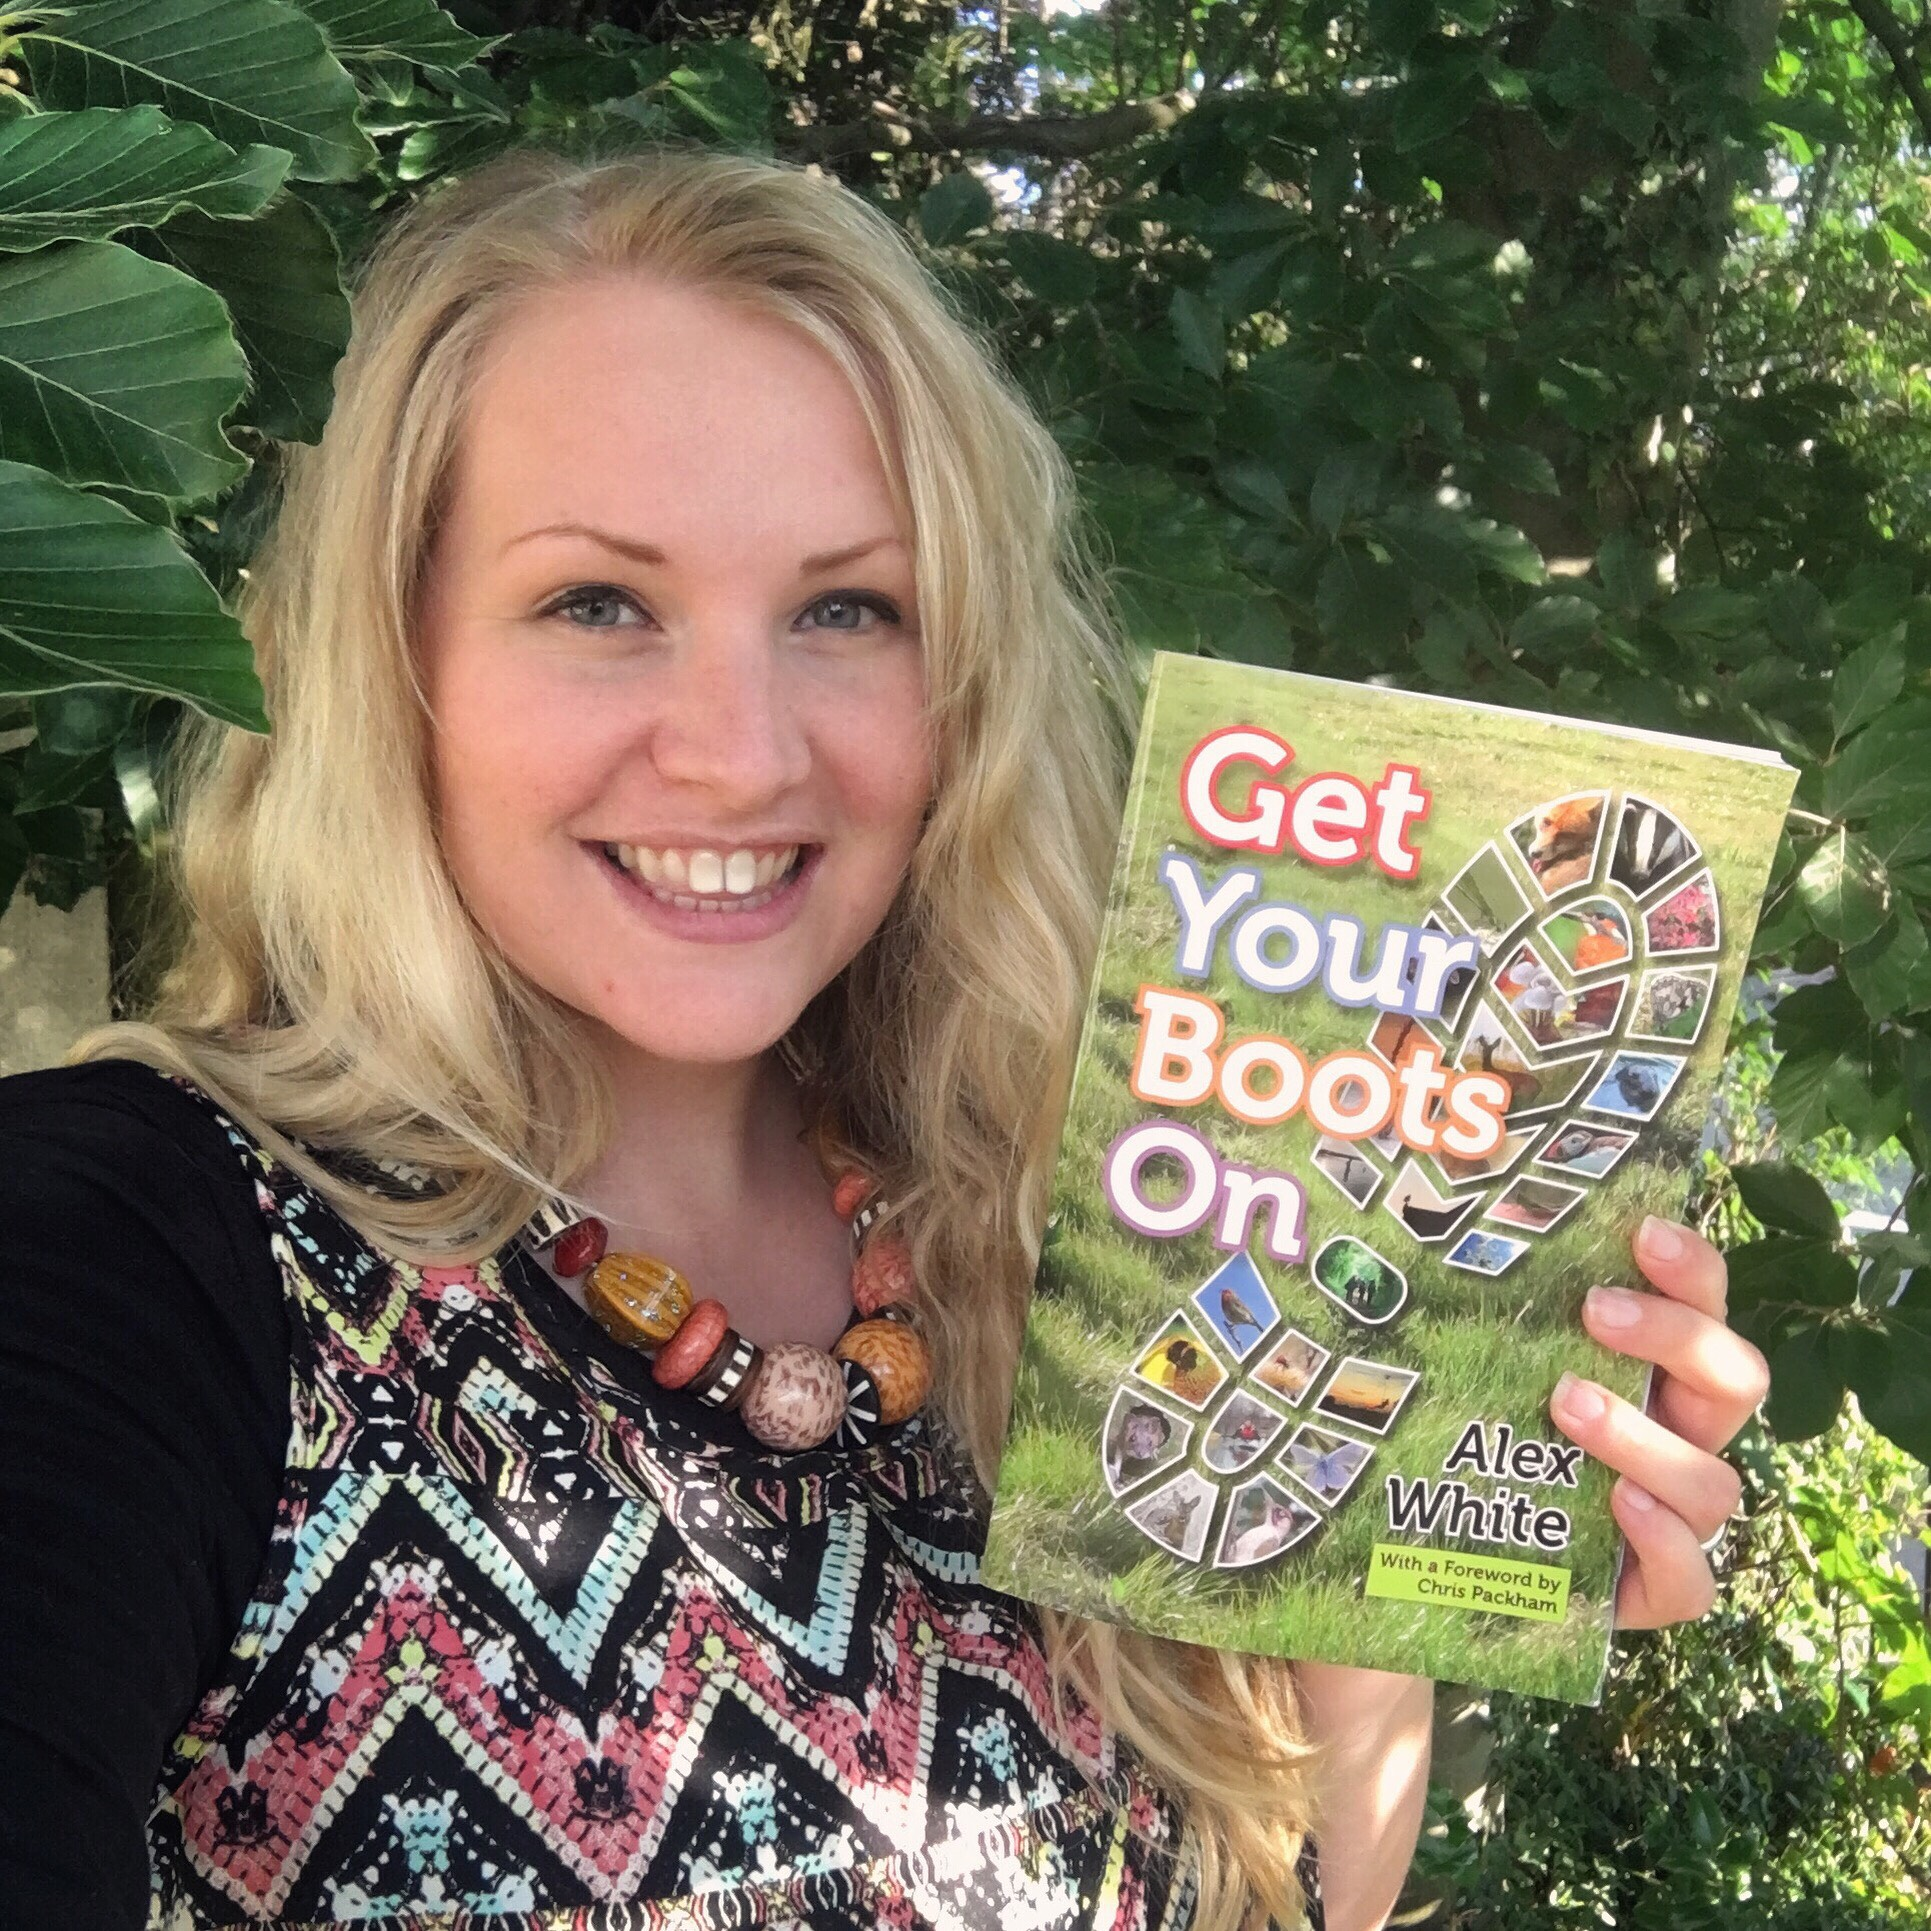 kate on conservation holds up Get Your Boots On book by Alex White